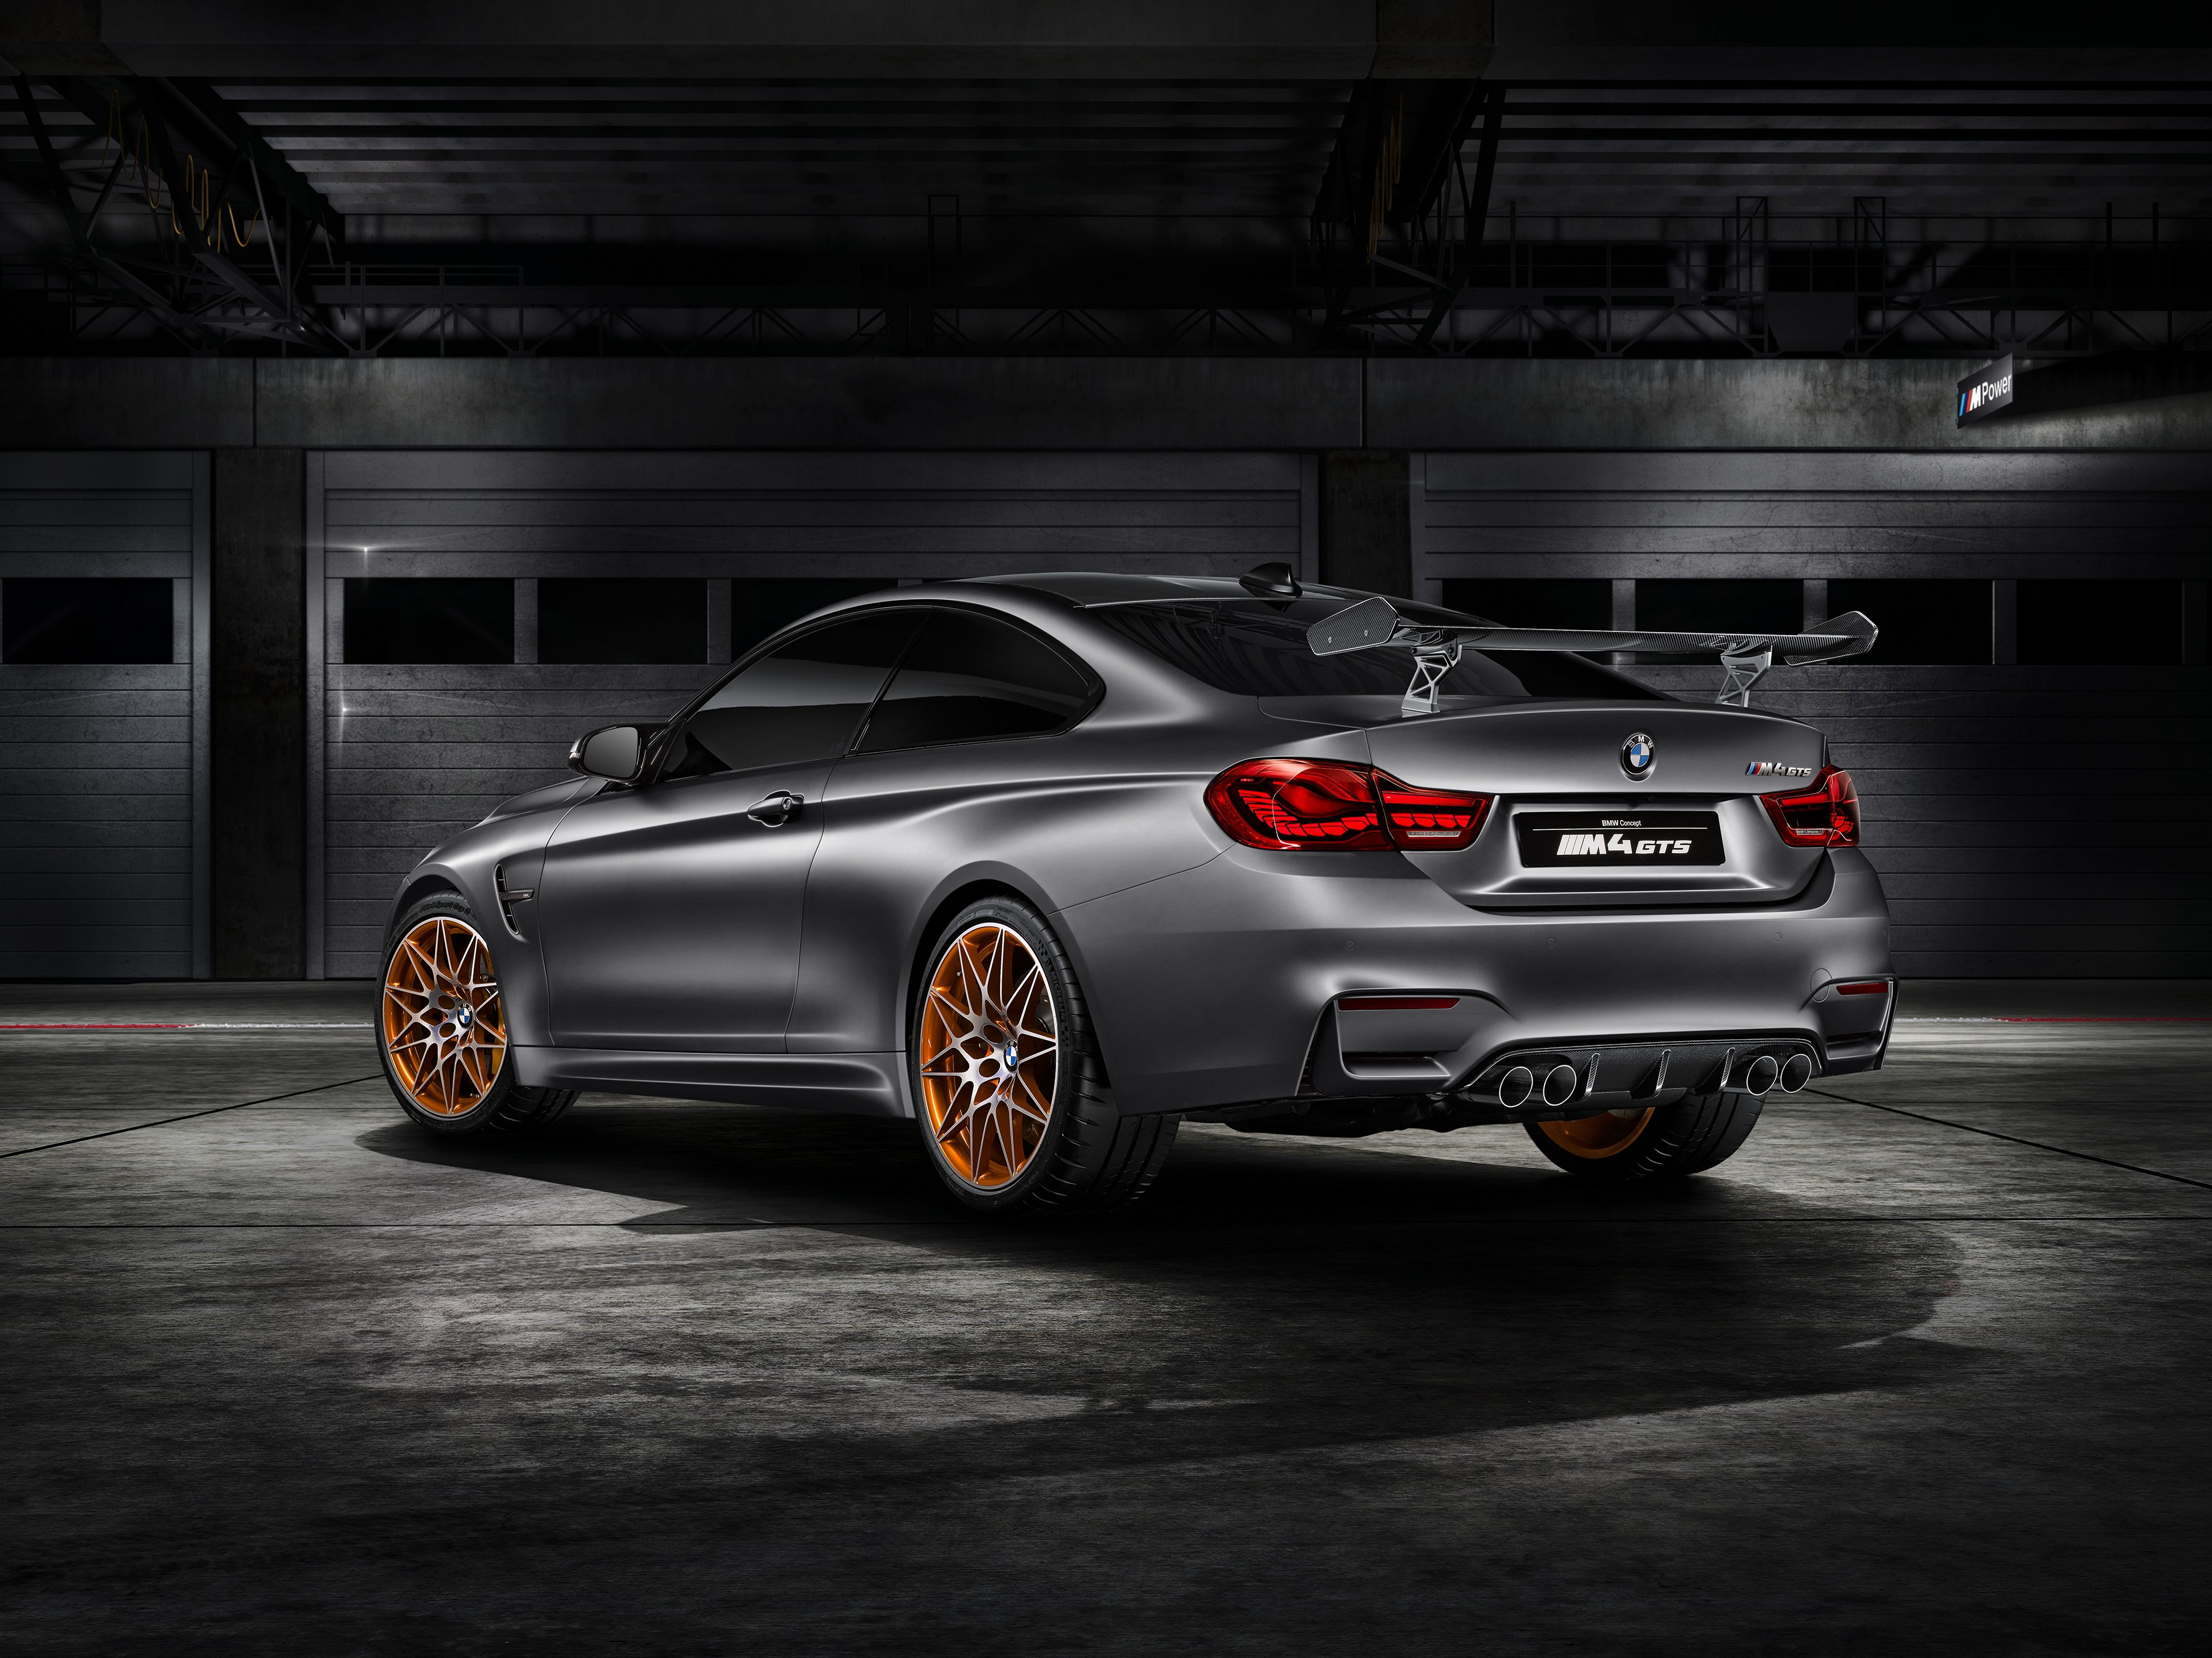 BMW Concept M4 GTS Makes World Debut at Pebble Beach with OLED ...